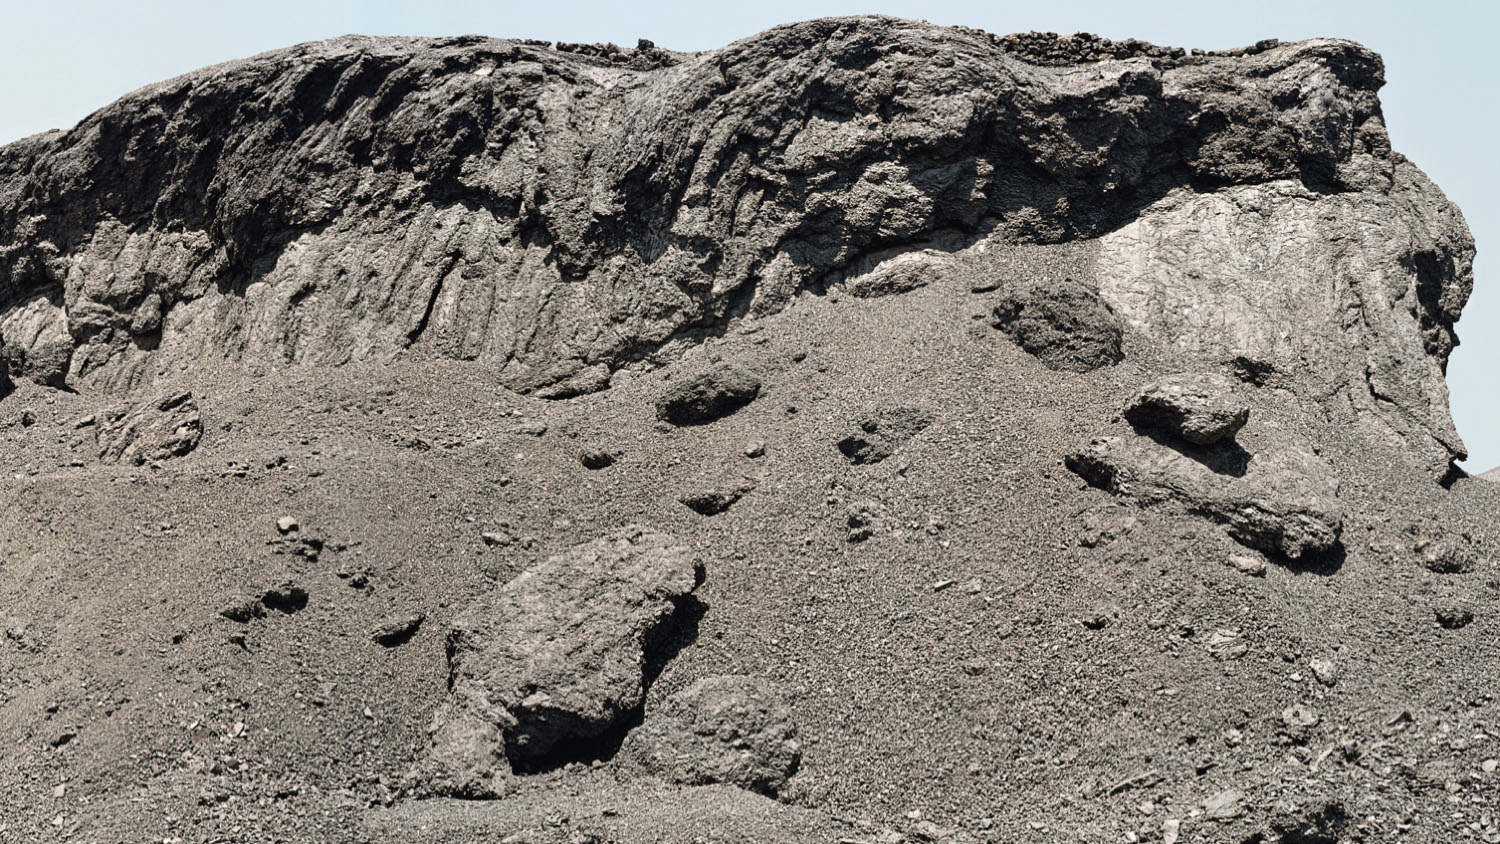 Slag heap from Panulcillo mine, now closed. Ovalle commune, Chile, 2014